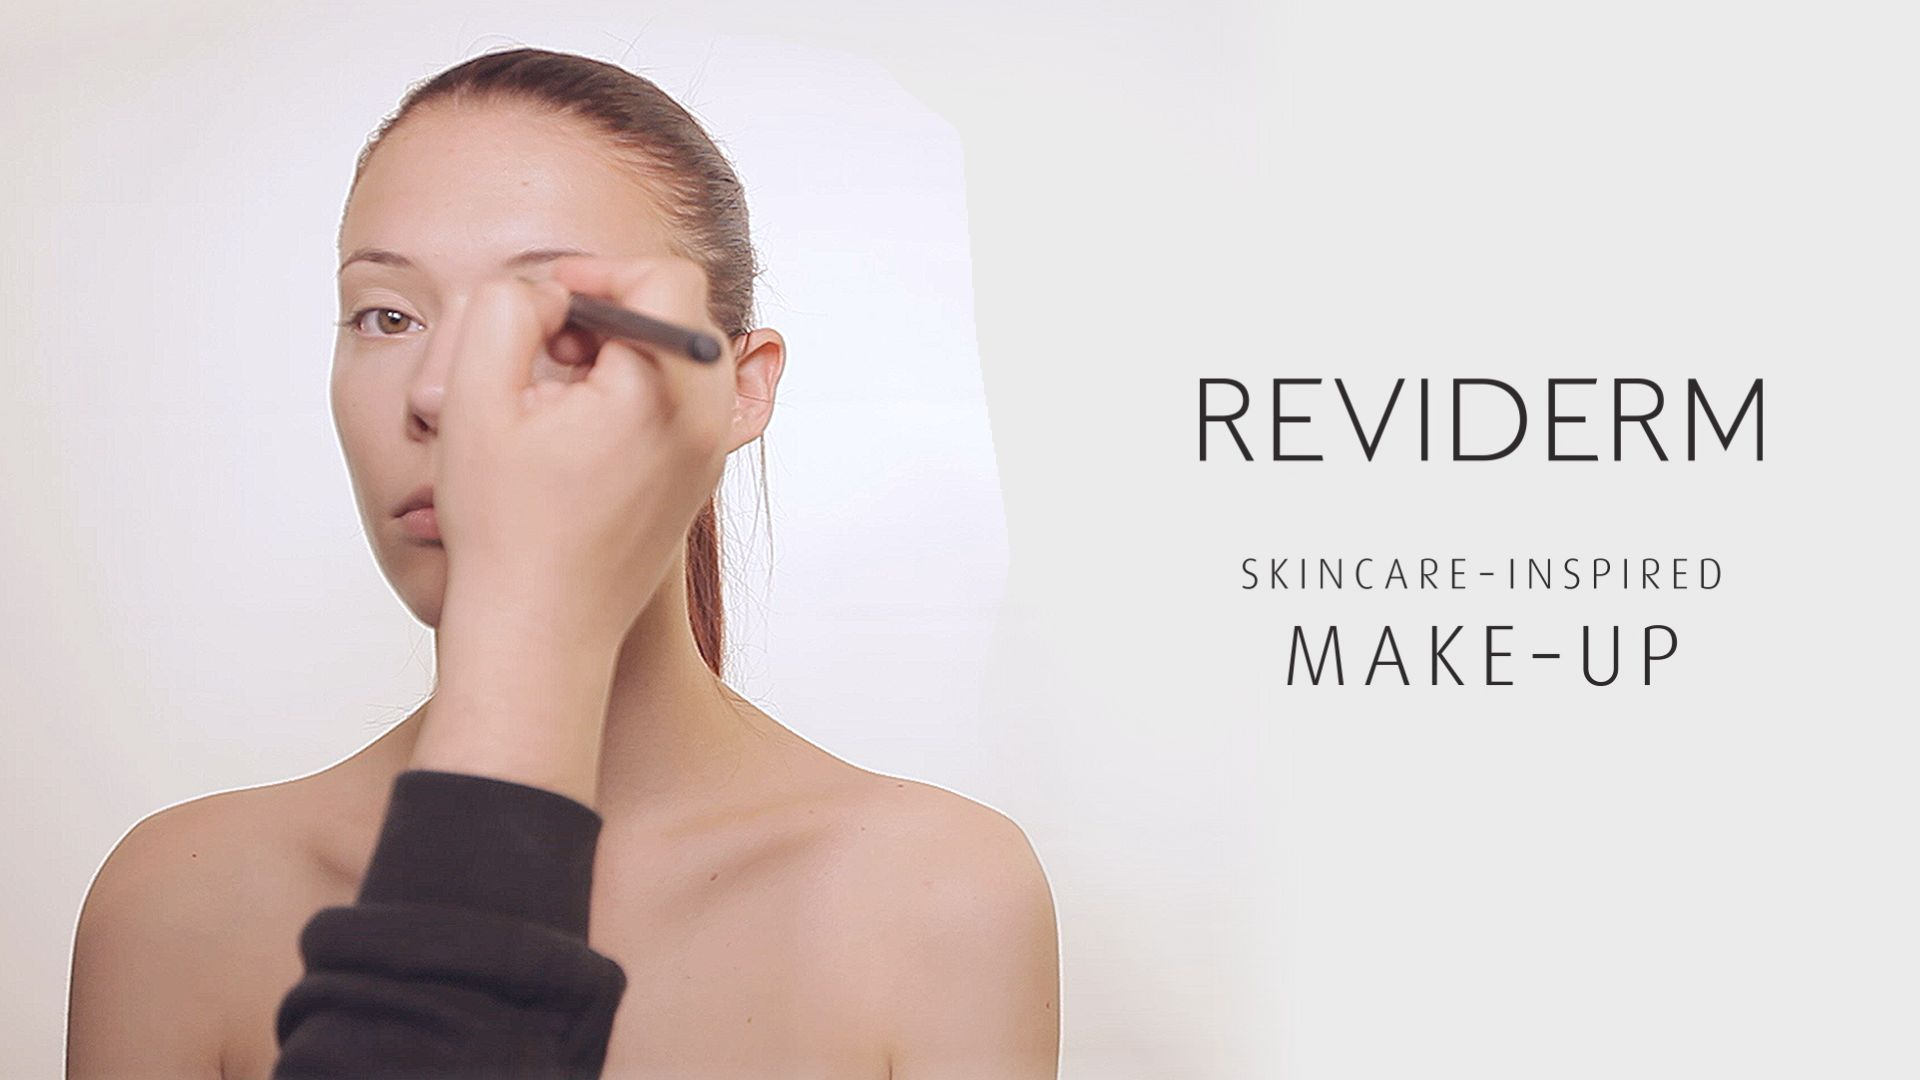 Reviderm make up minute 7